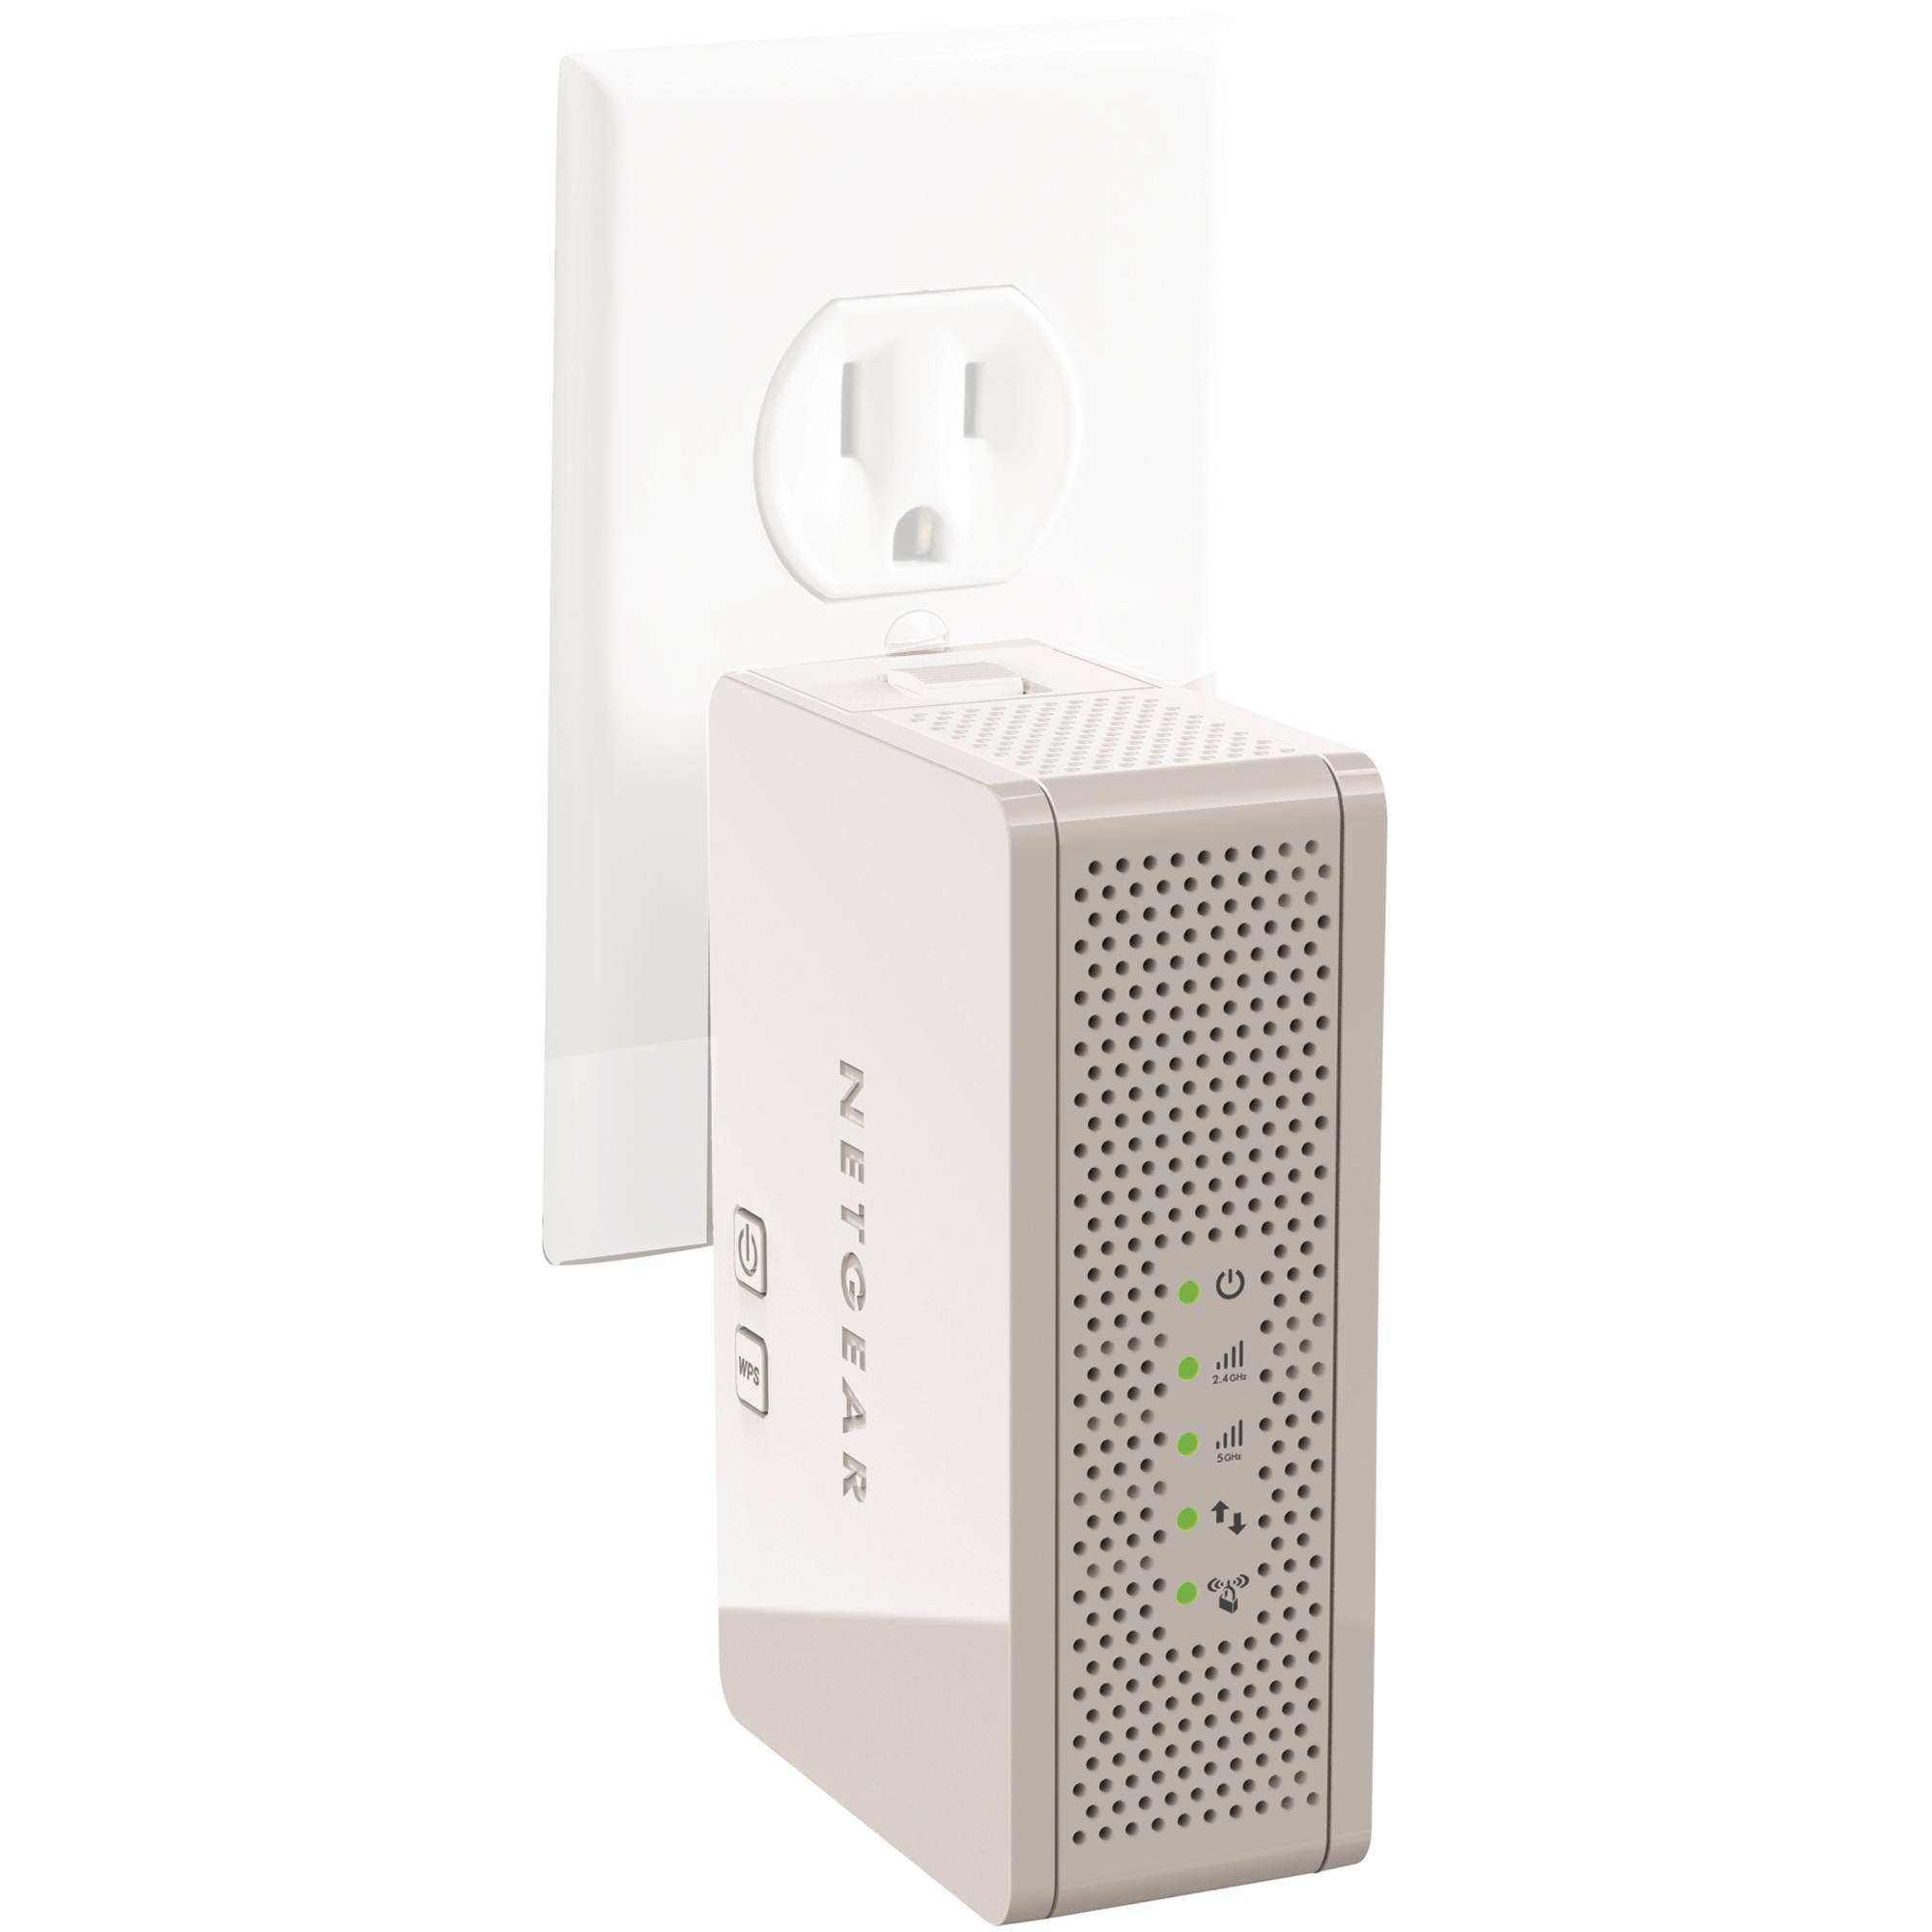 Brand New Products Hot Sale Belkin N600 Dual-band Wi-fi Range Extender Max Home Networking & Connectivity